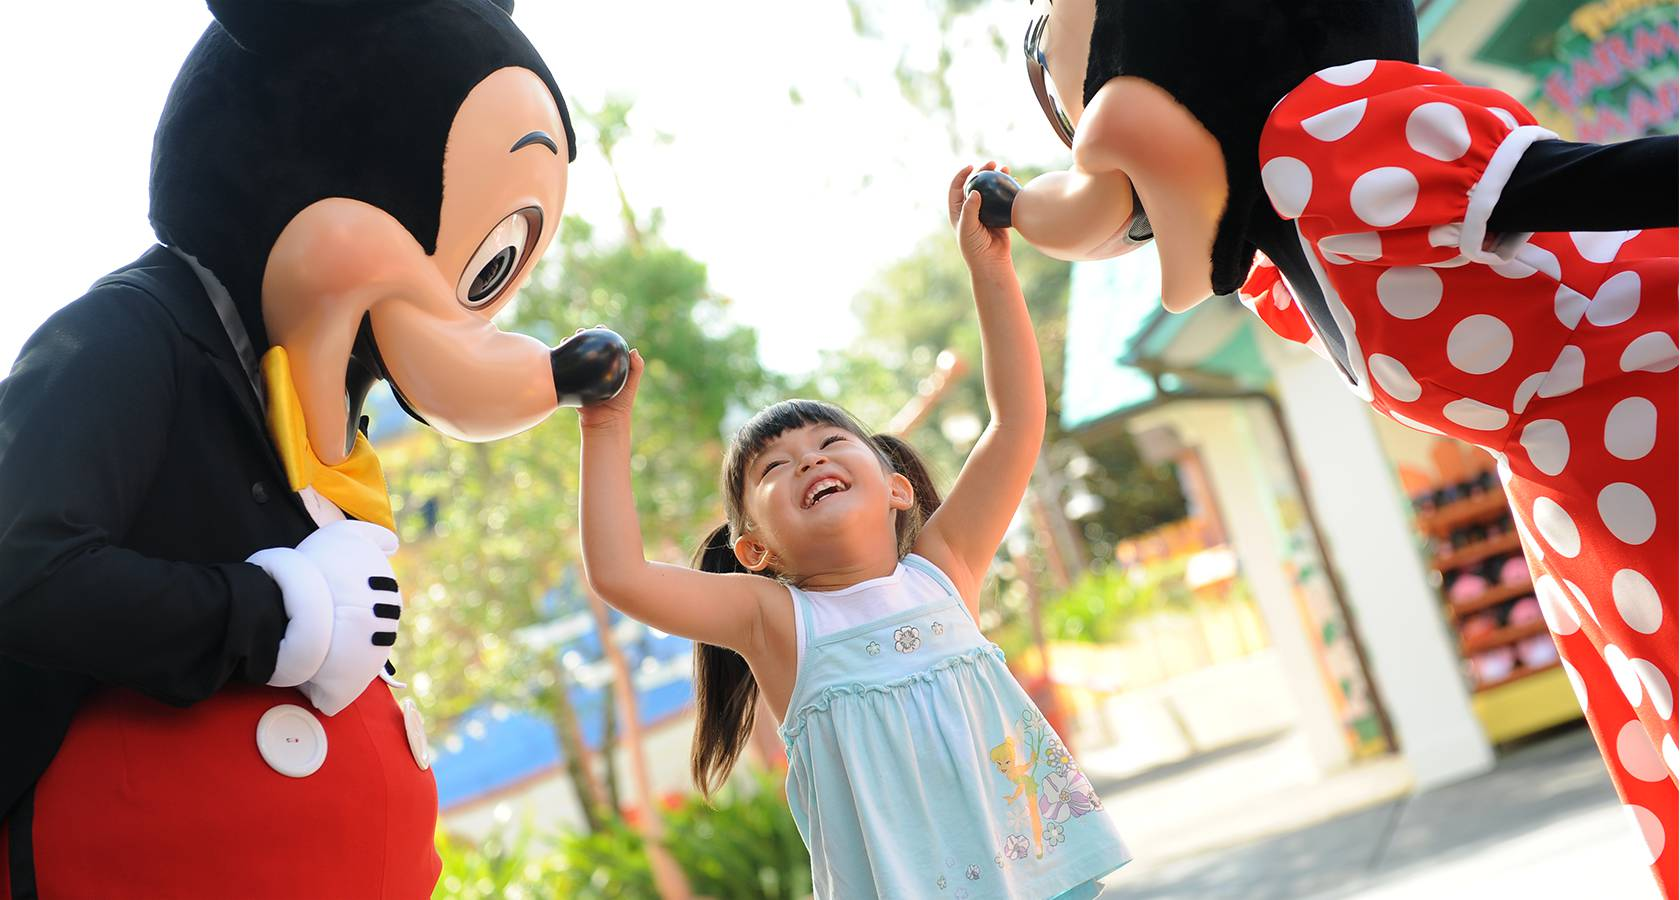 Girl with Mickey and Minnie Mouse